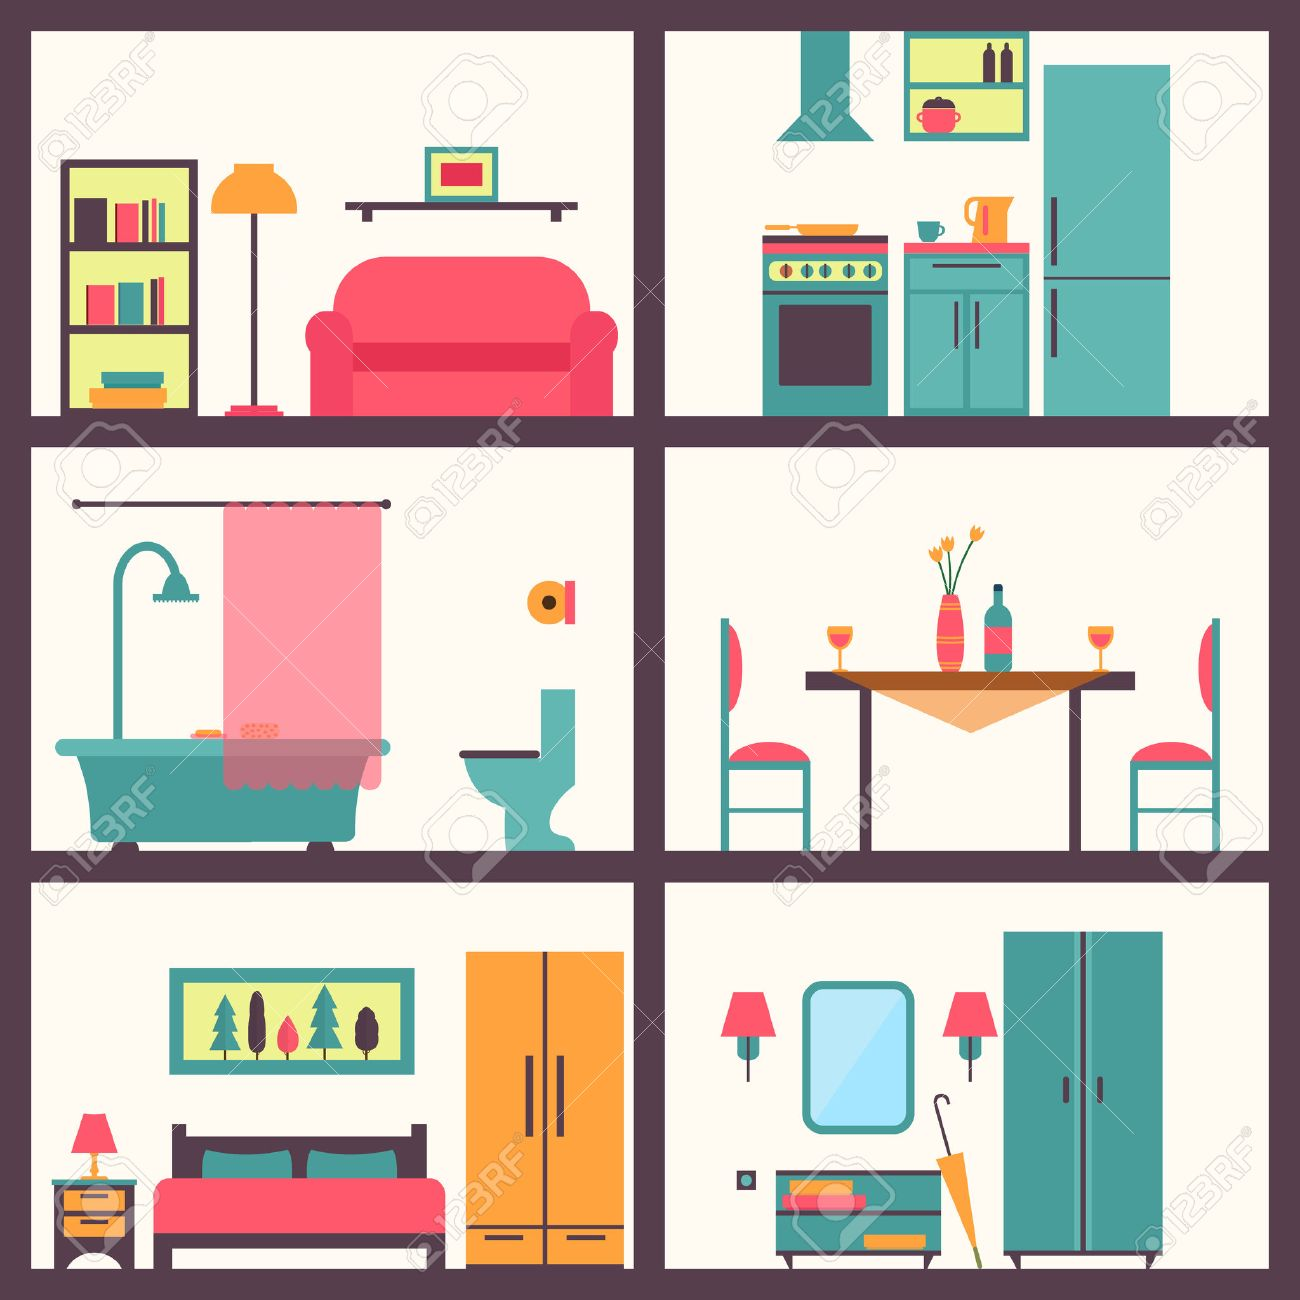 All rooms in the house rooms of homes vector art image illustration - House Rooms Clipart Free Pivot Media